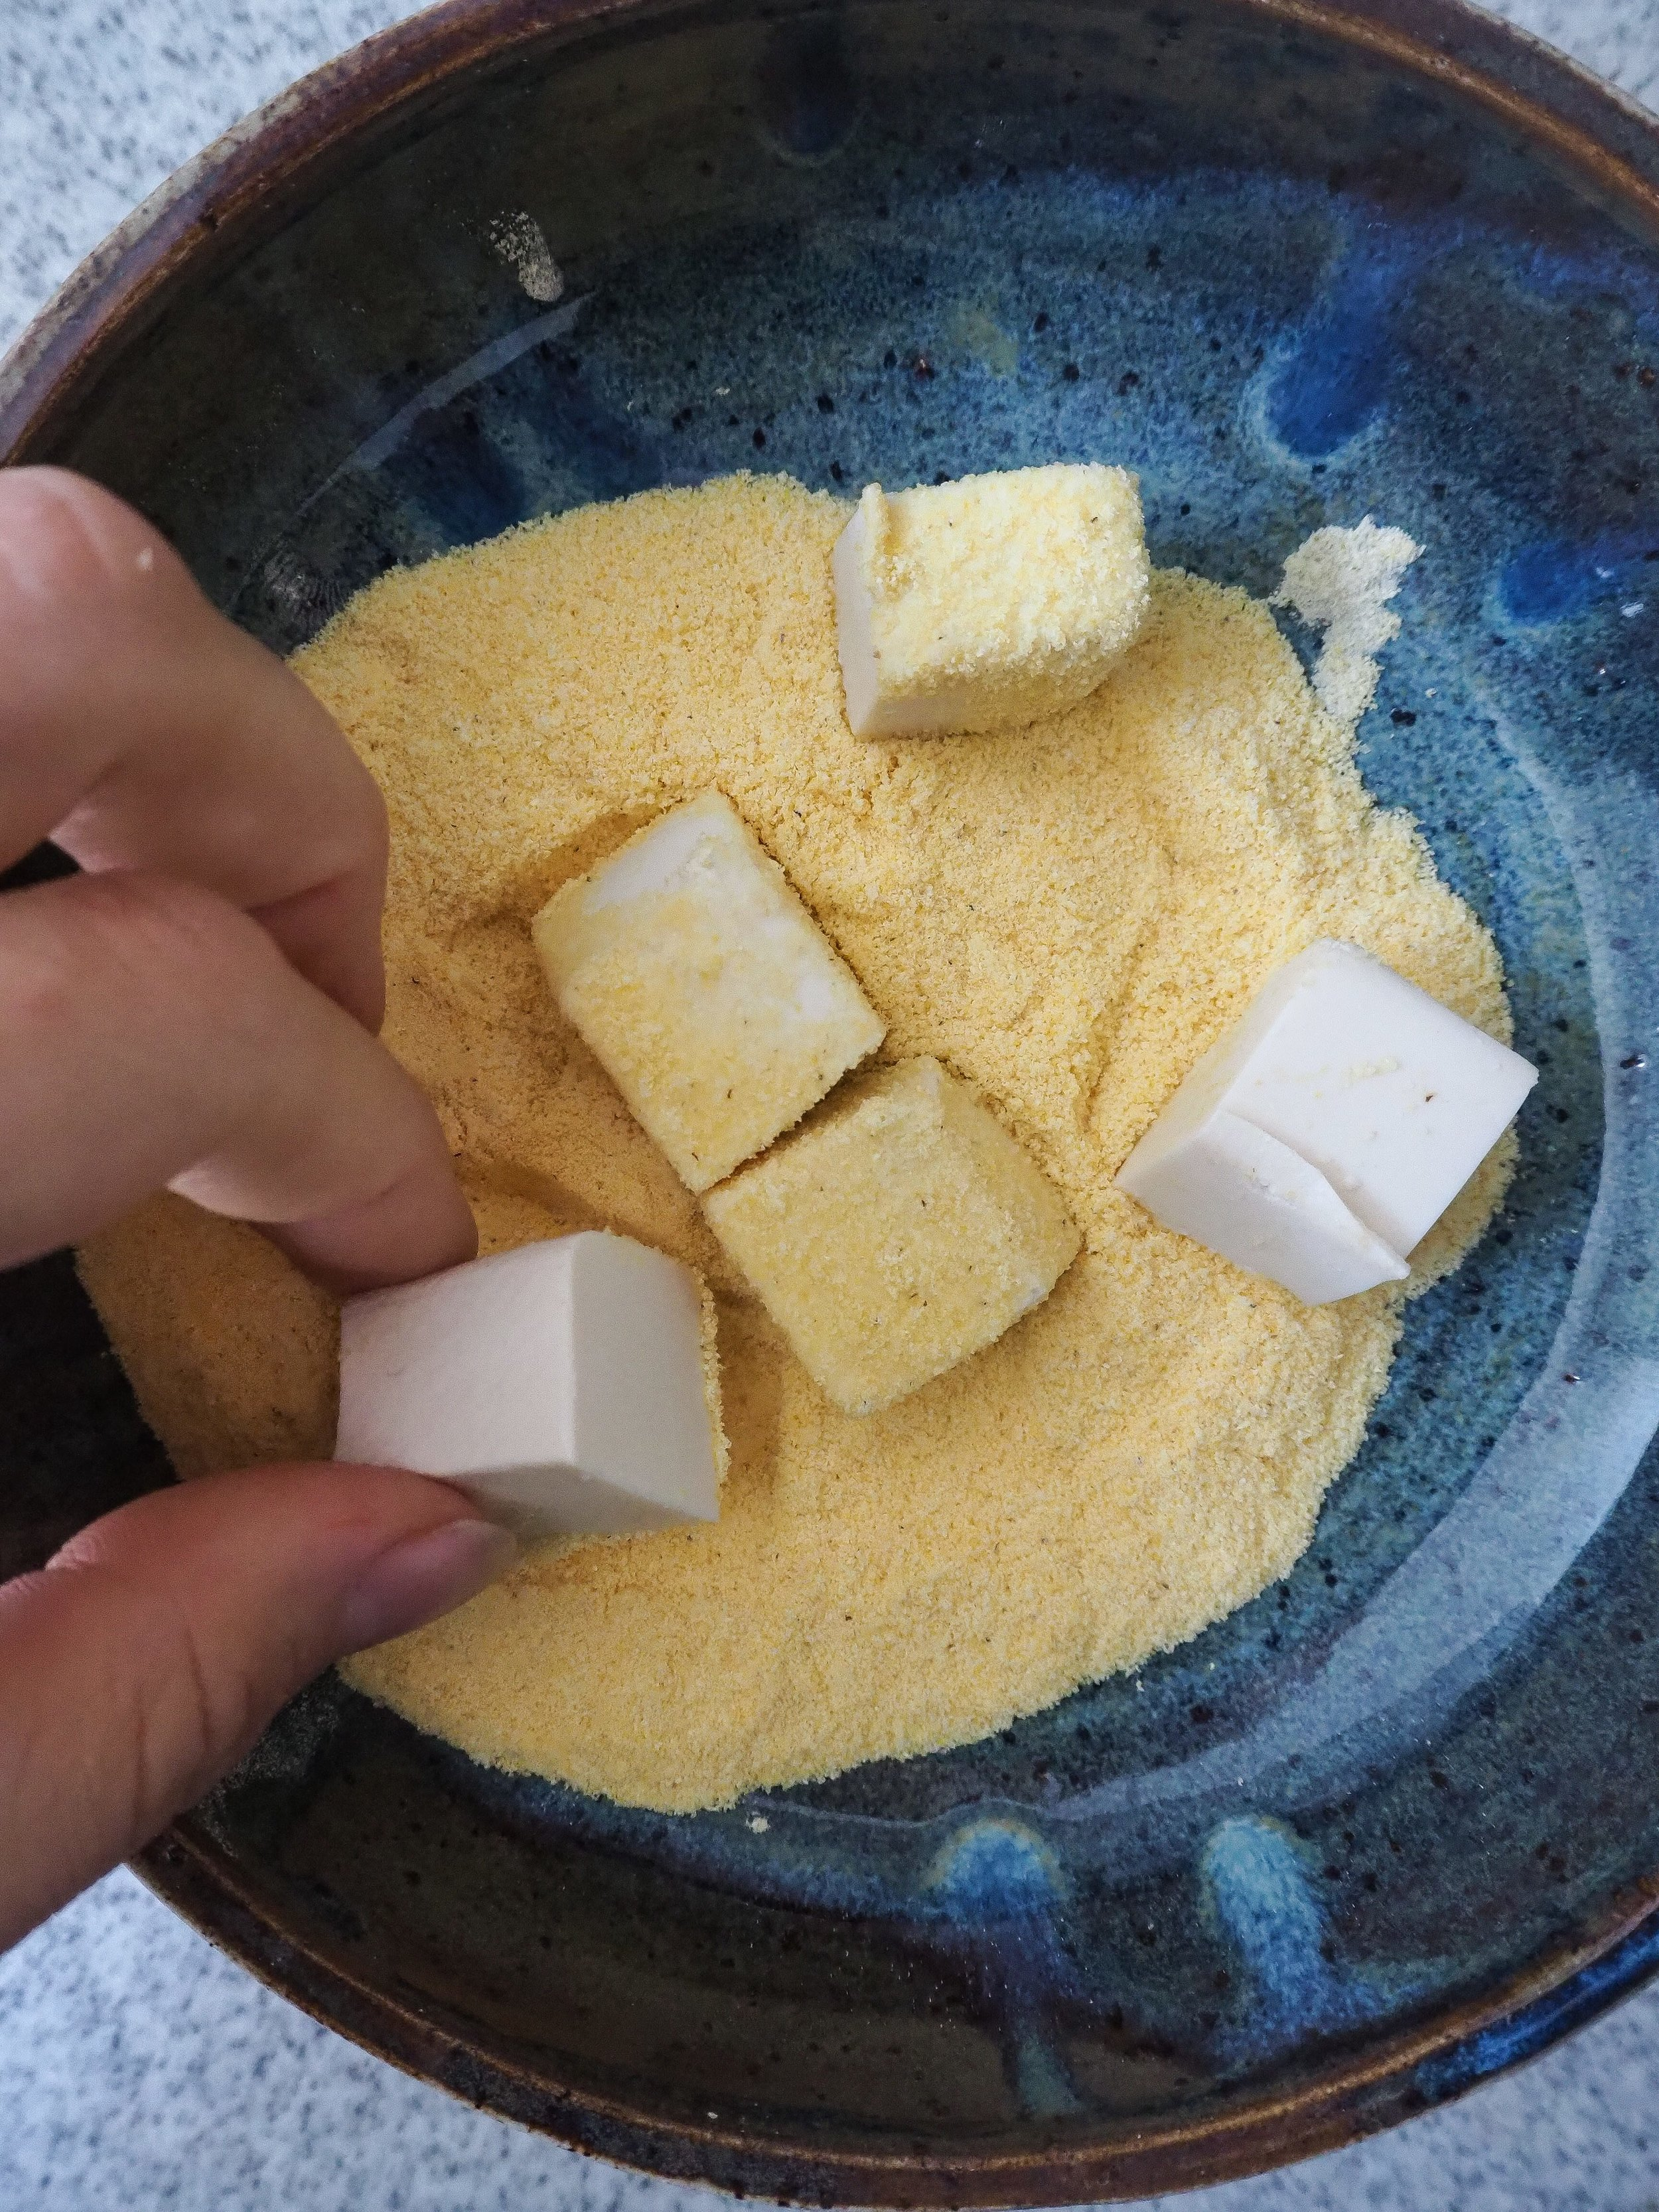 Coat the tofu in cornmeal.